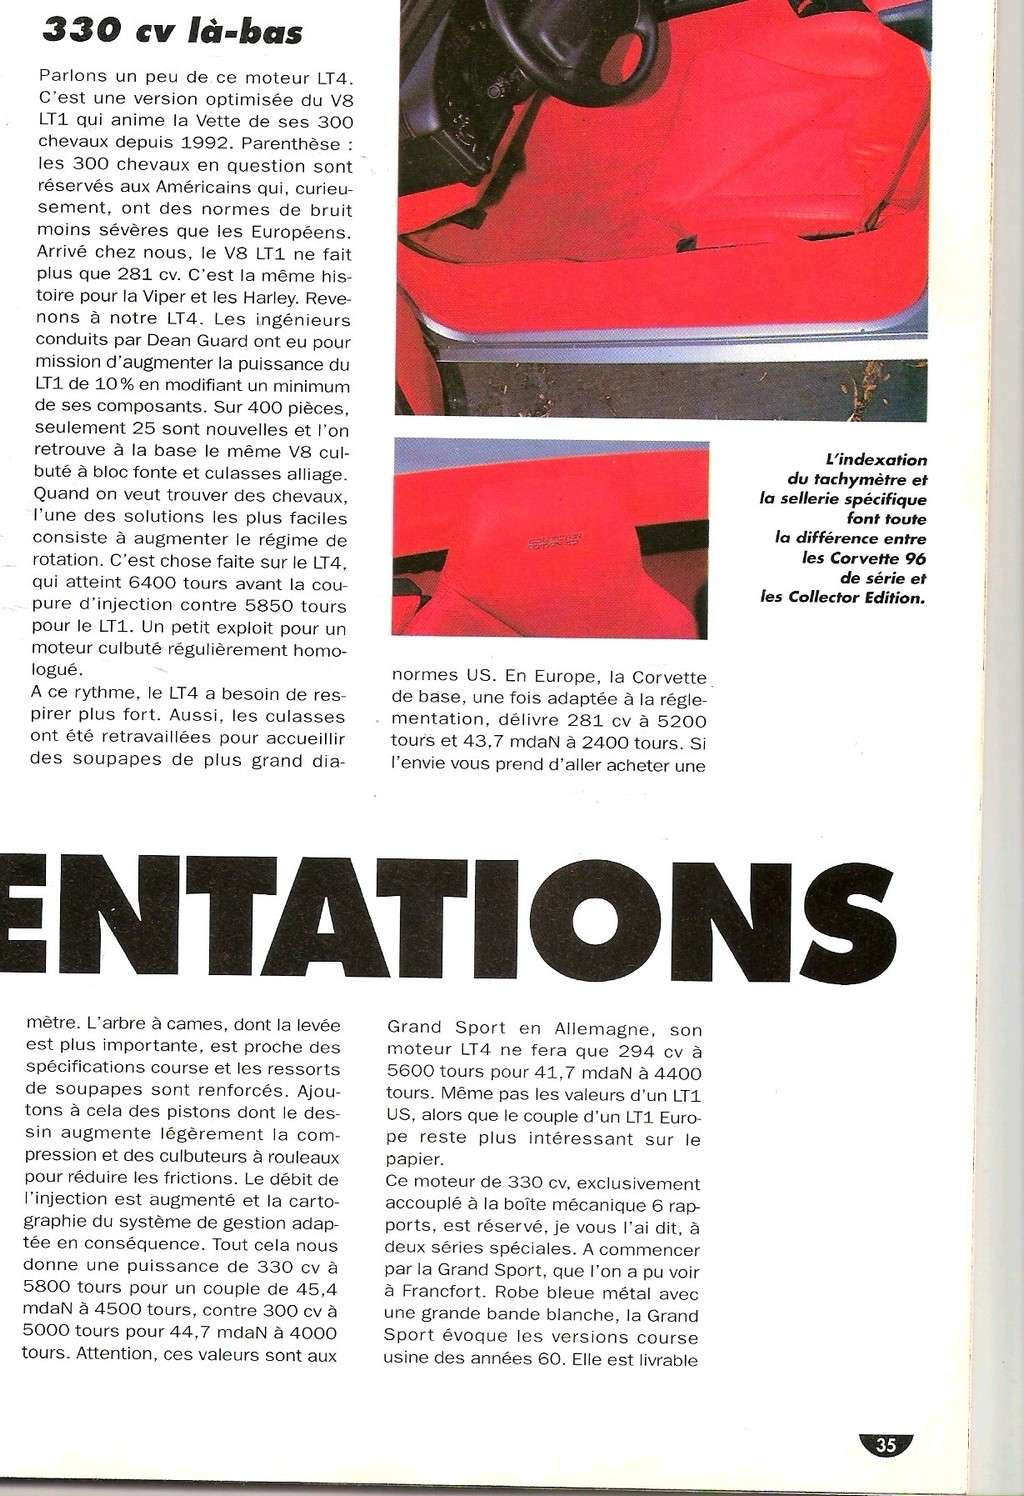 Bride en Europe des LT1 et LT4 - article NITRO mag 1996 - Lt1_lt10